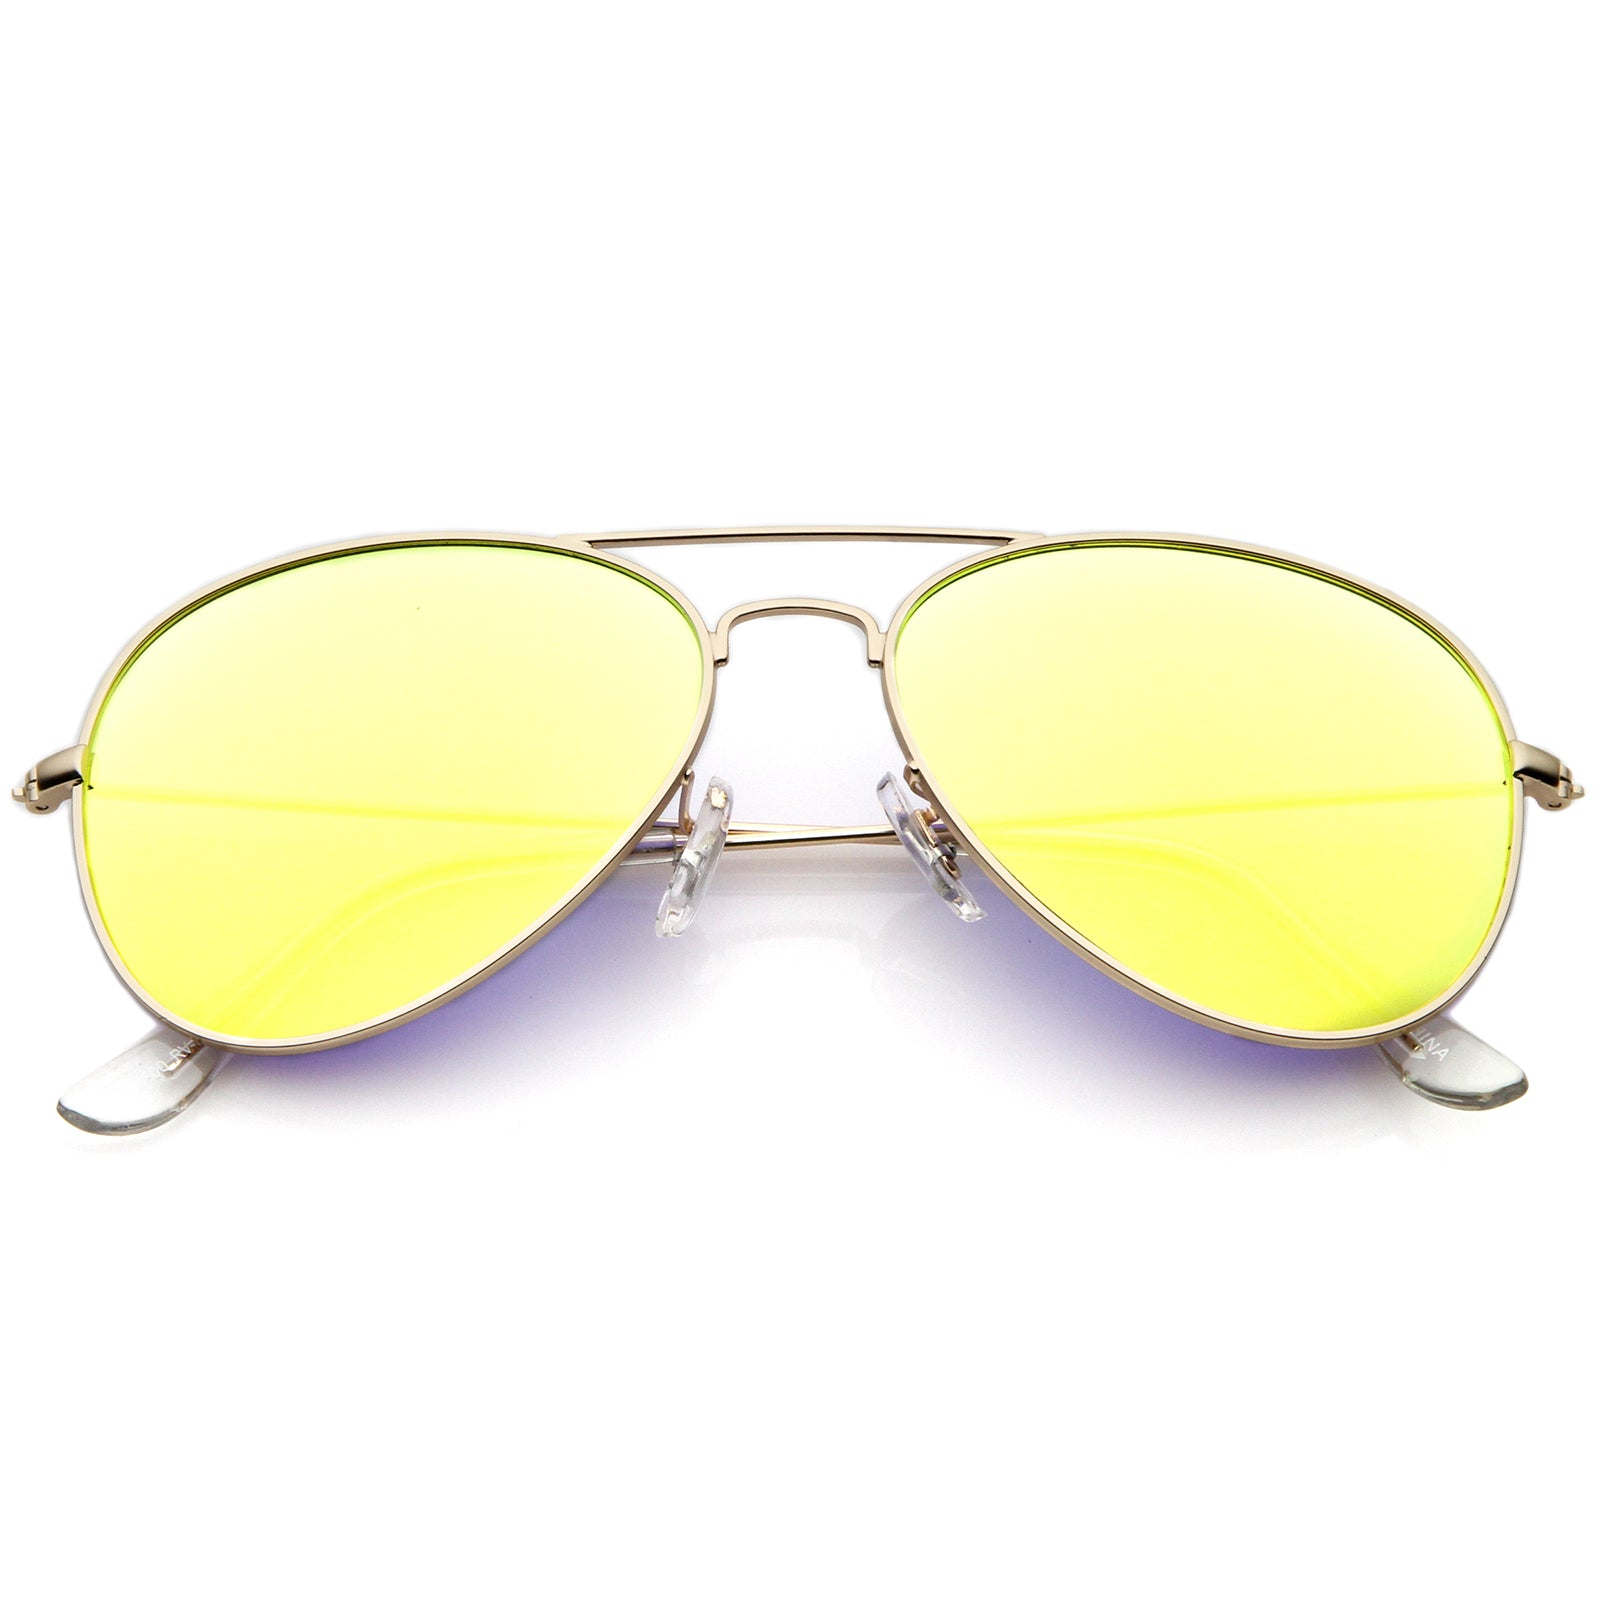 Premium Nickel Plated Frame Multi-Coated Mirror Lens Aviator Sunglasses 59mm - sunglass.la - 13